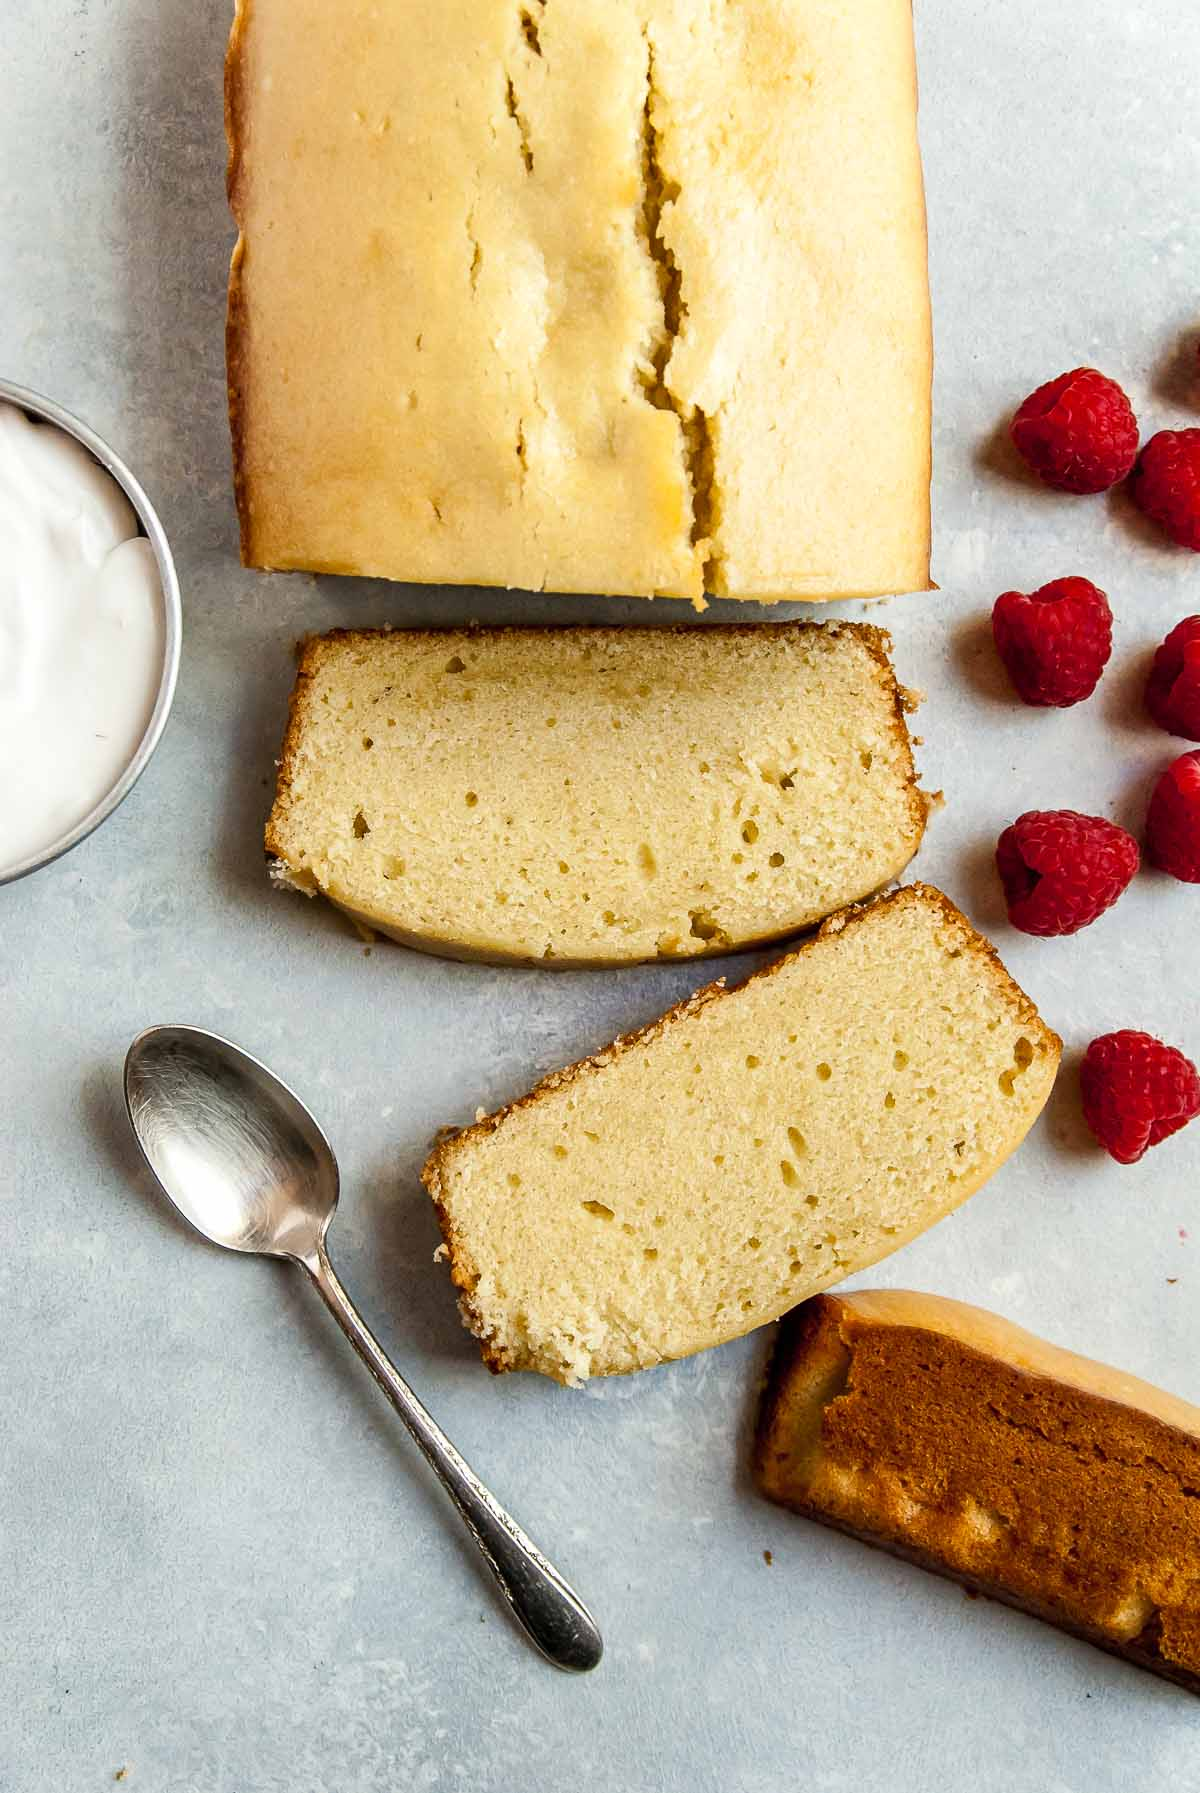 Slices of vegan pound cake with raspberries on blue background